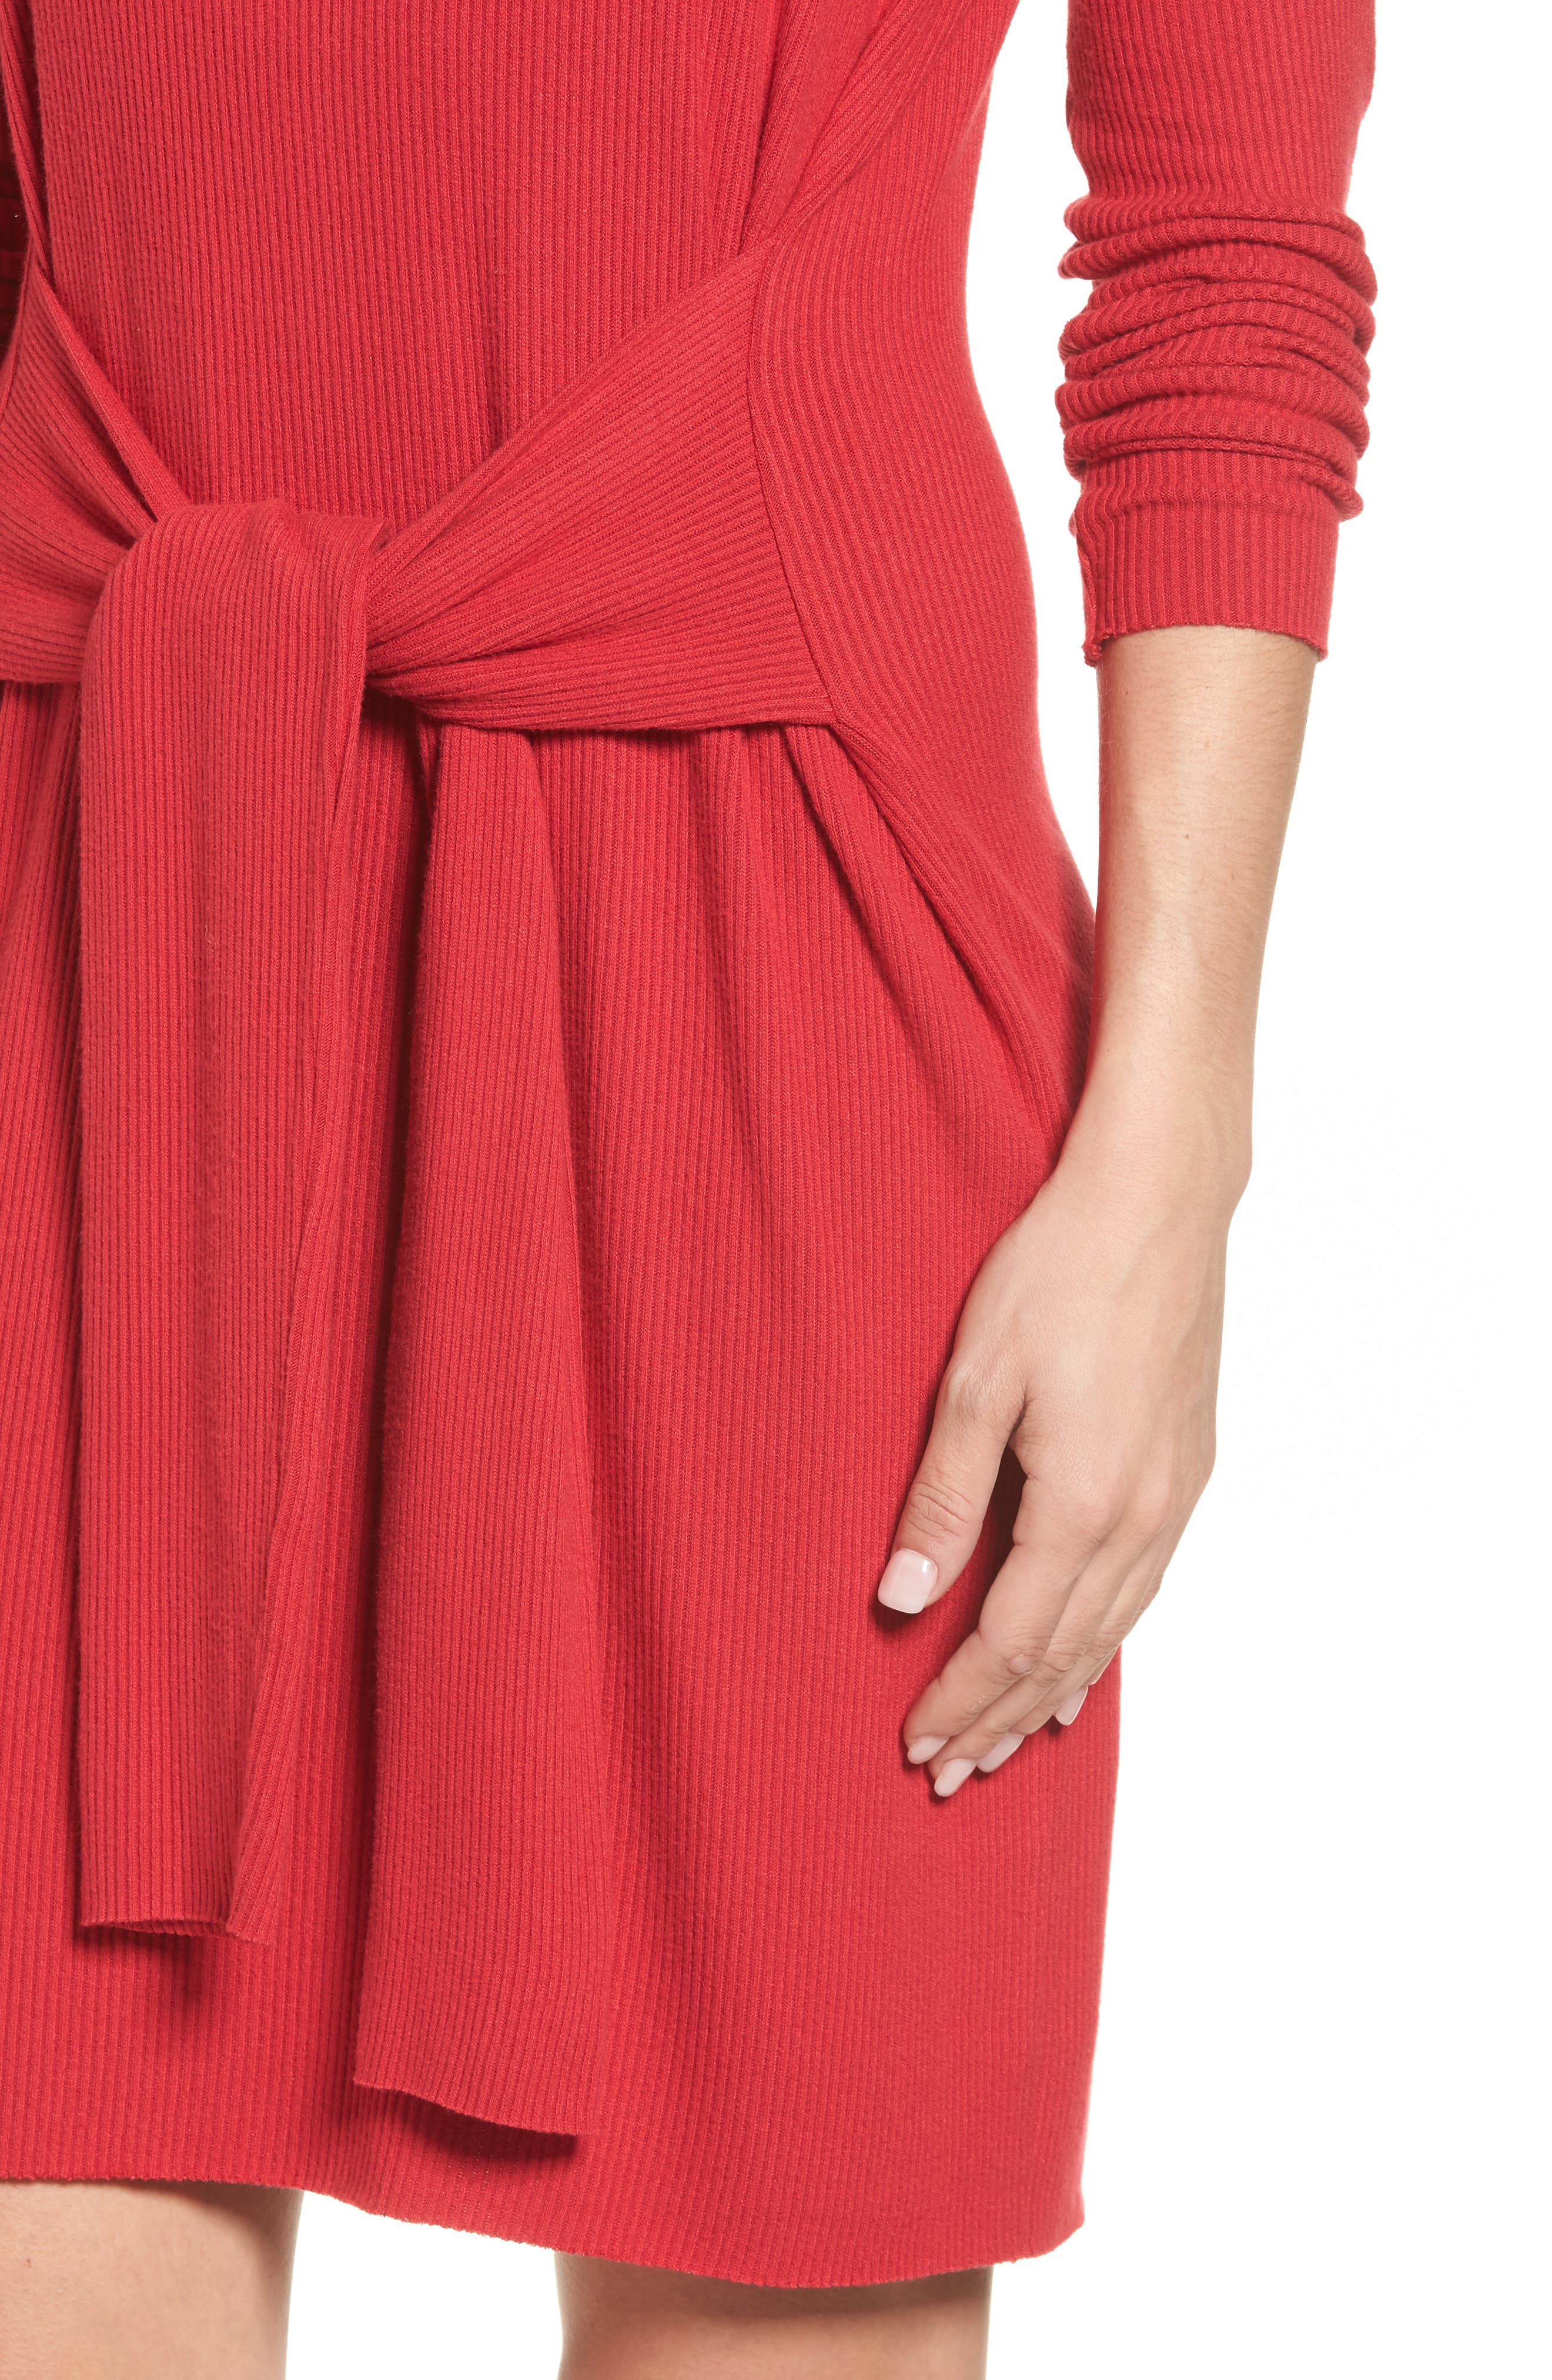 Ribbed Tie-Waist Sweater Dress,                             Alternate thumbnail 4, color,                             600